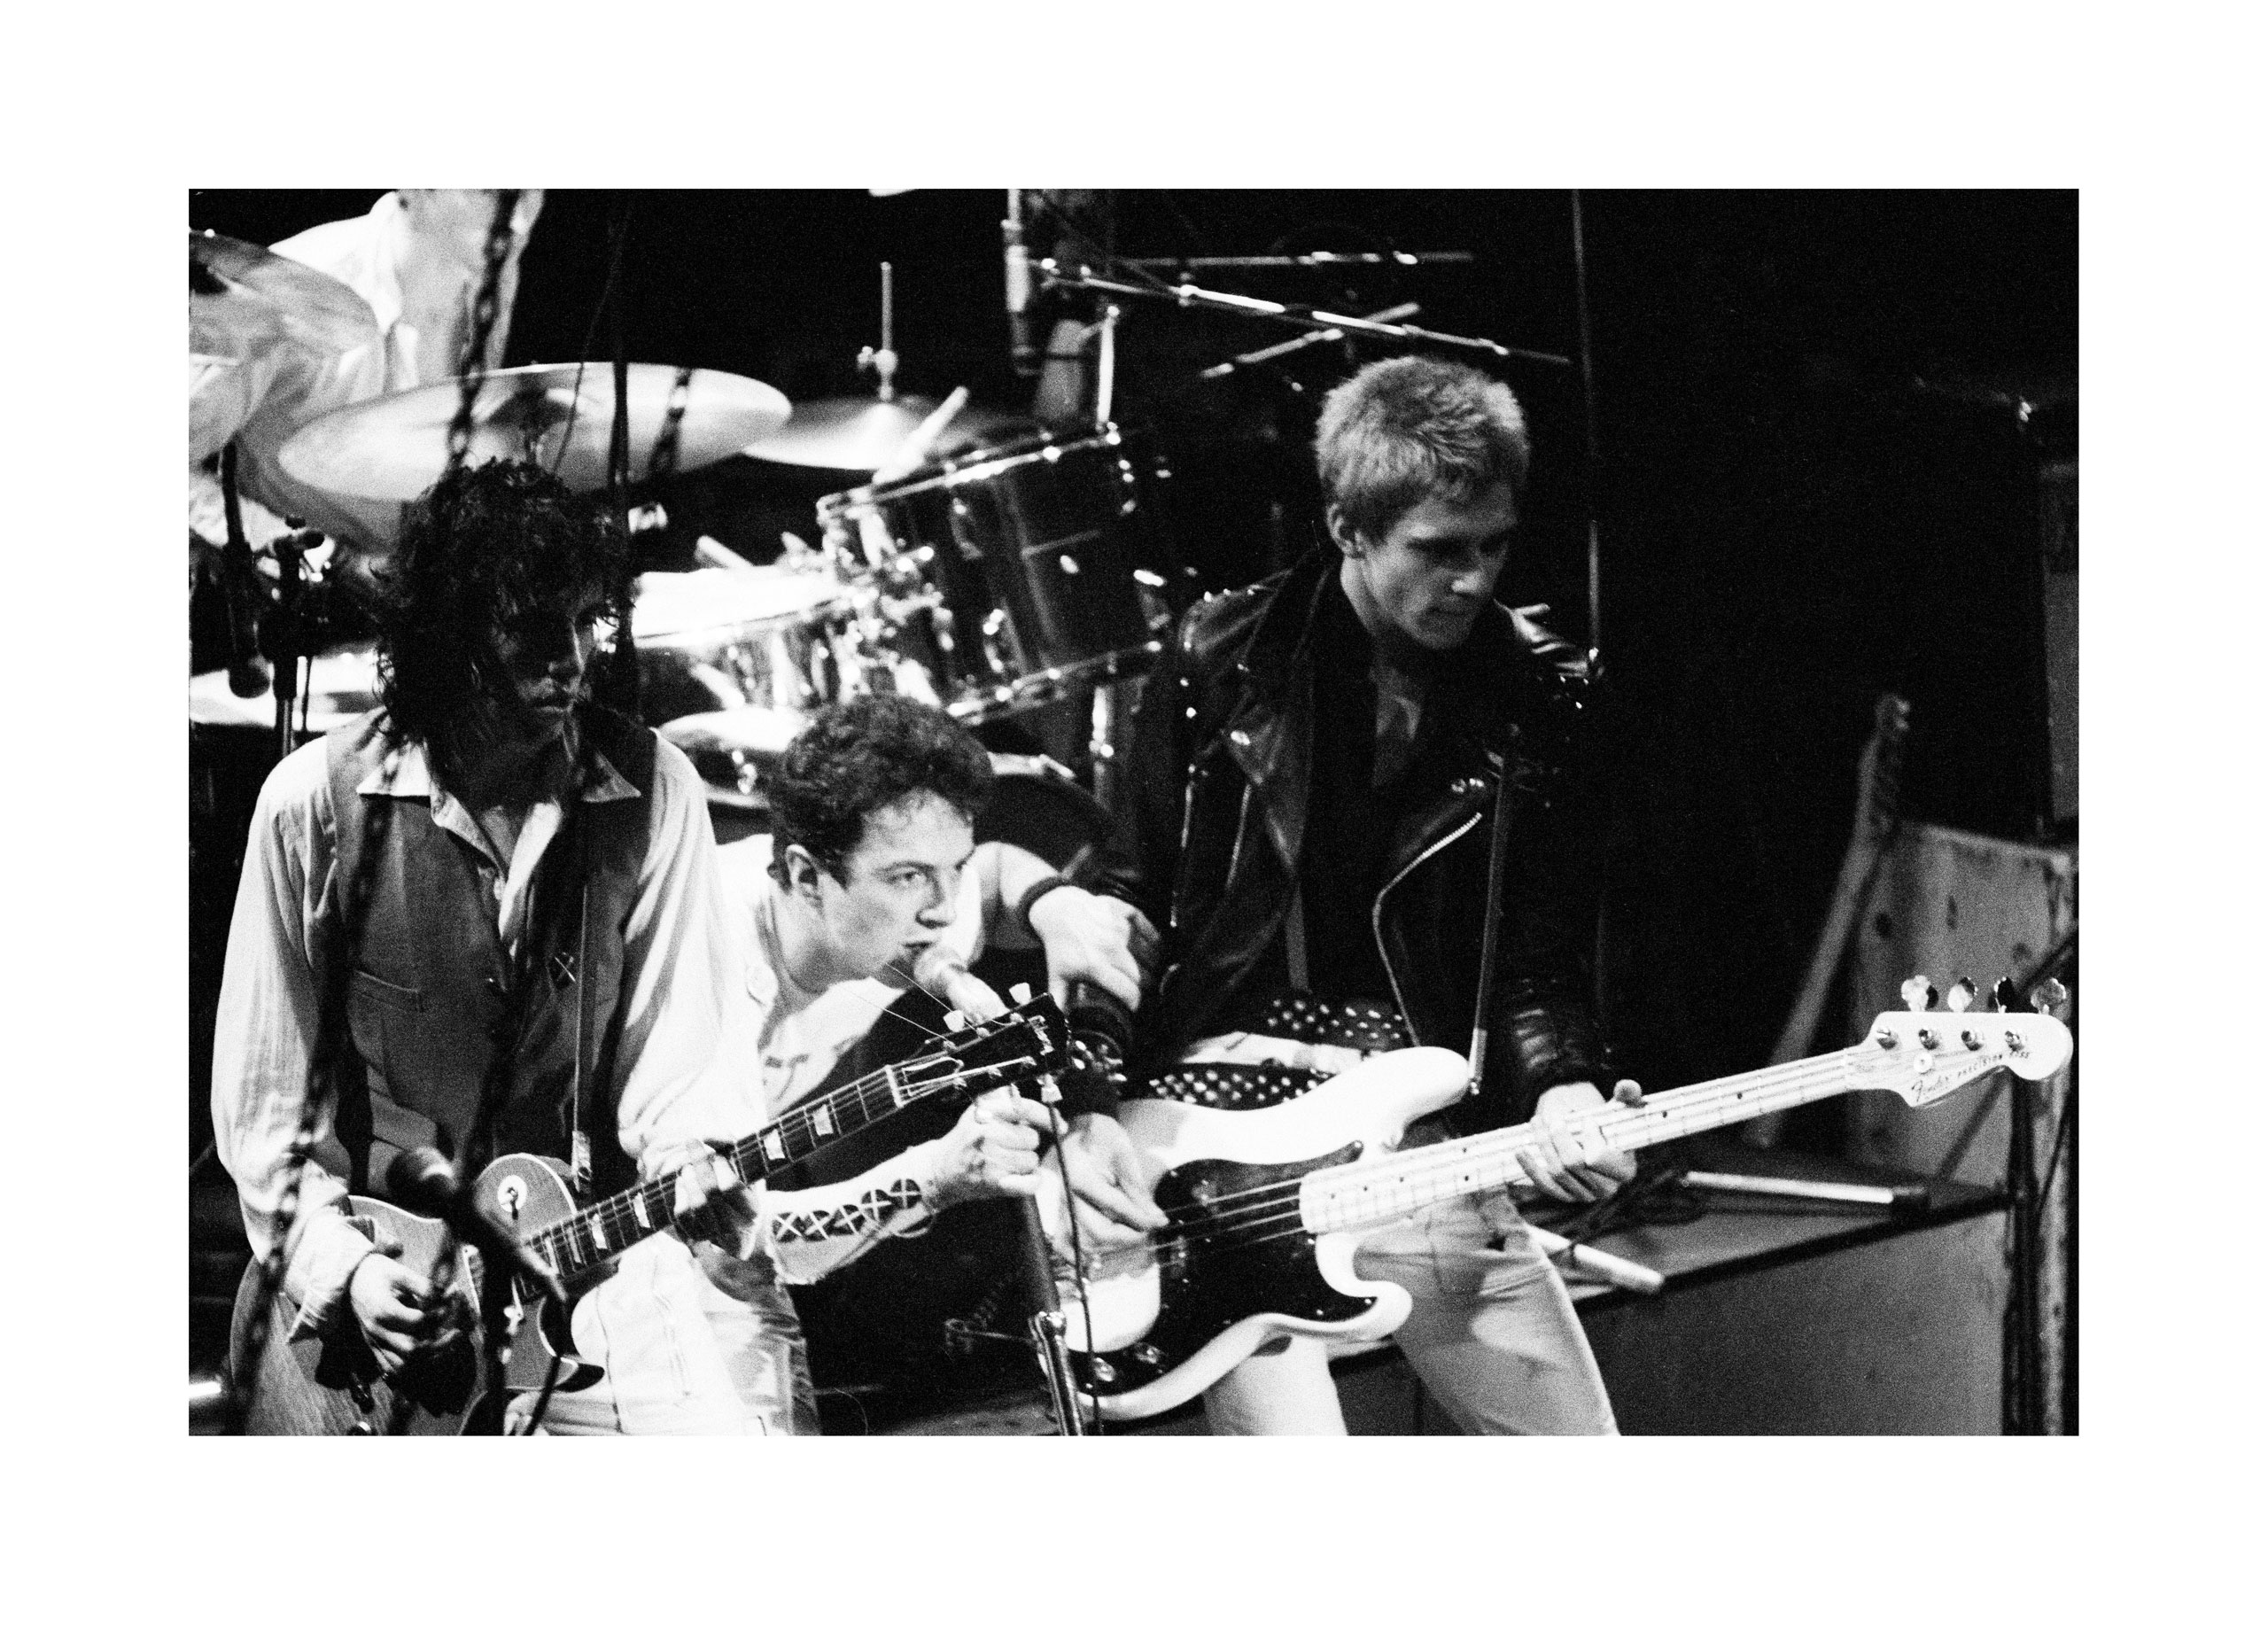 Image of The Clash by Harry Papadopoulos